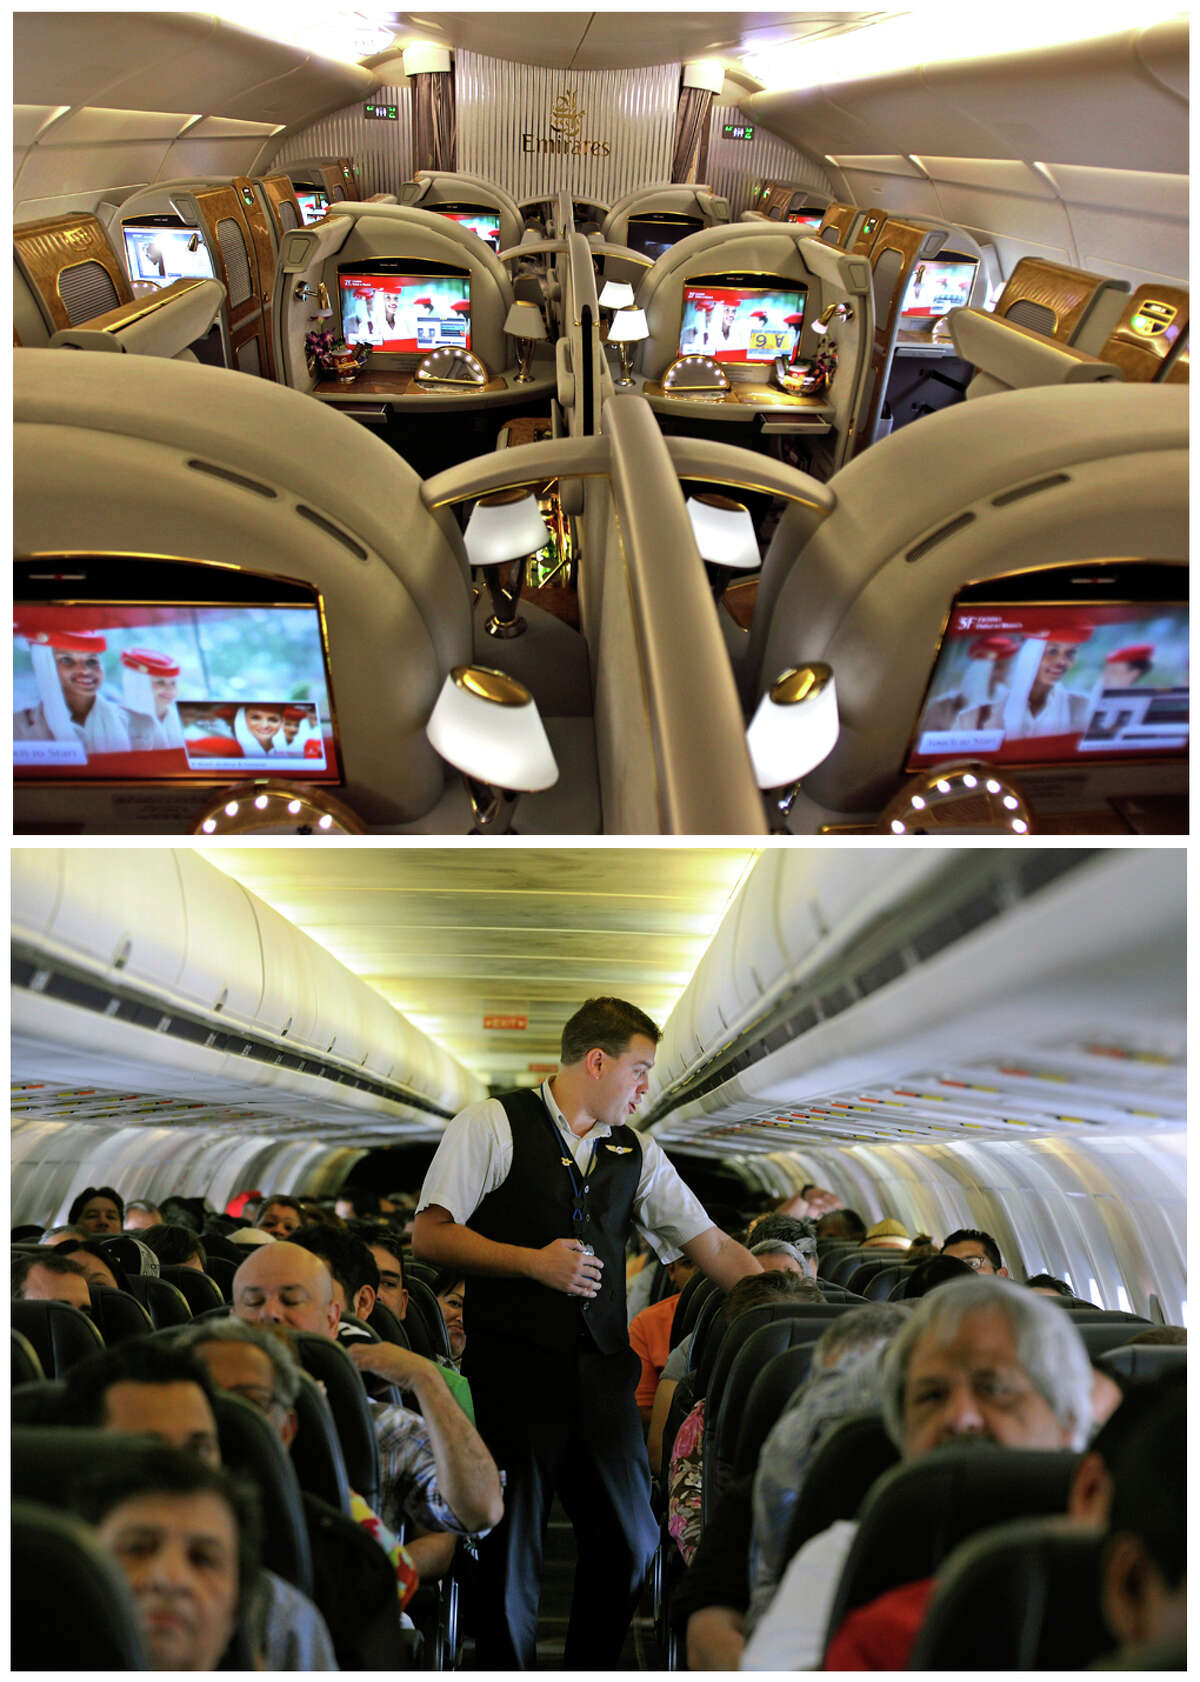 This combination of Associated Press file photos show, on top, the first class section of an Emirates airlines Airbus A380 at the new Concourse A of Dubai airport in Dubai, United Arab Emirates in 2013, and on the bottom, Allegiant Air flight attendant Chris Killian preparing his passengers for the Laredo, Tex, bound flight before it pushes back from the terminal at McCarran International Airport in Las Vegas, in 2013. When Emirates Airline opened a new concourse at its home airport in Dubai last year, it made sure to keep coach passengers separate from those in business and first class. The top floor of the building is a lounge for premium passengers with direct boarding to the upstairs of Emirates' fleet of double-decker Airbus A380s. Those in coach wait one story below and board to the lower level or the plane.